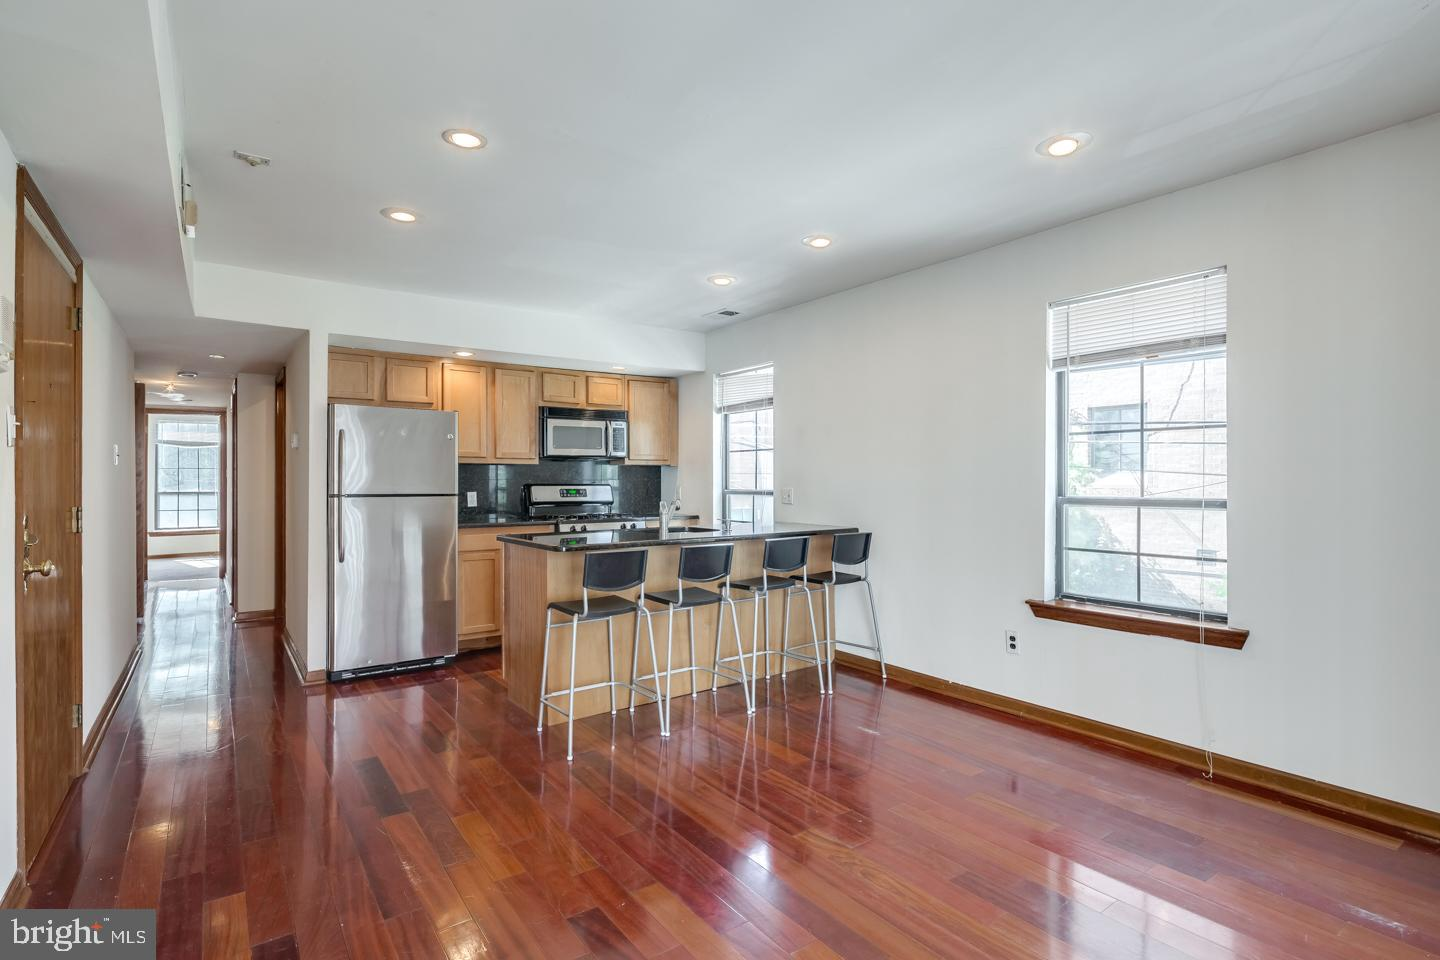 617 S 18th Street UNIT 2ND FLR Philadelphia, PA 19146